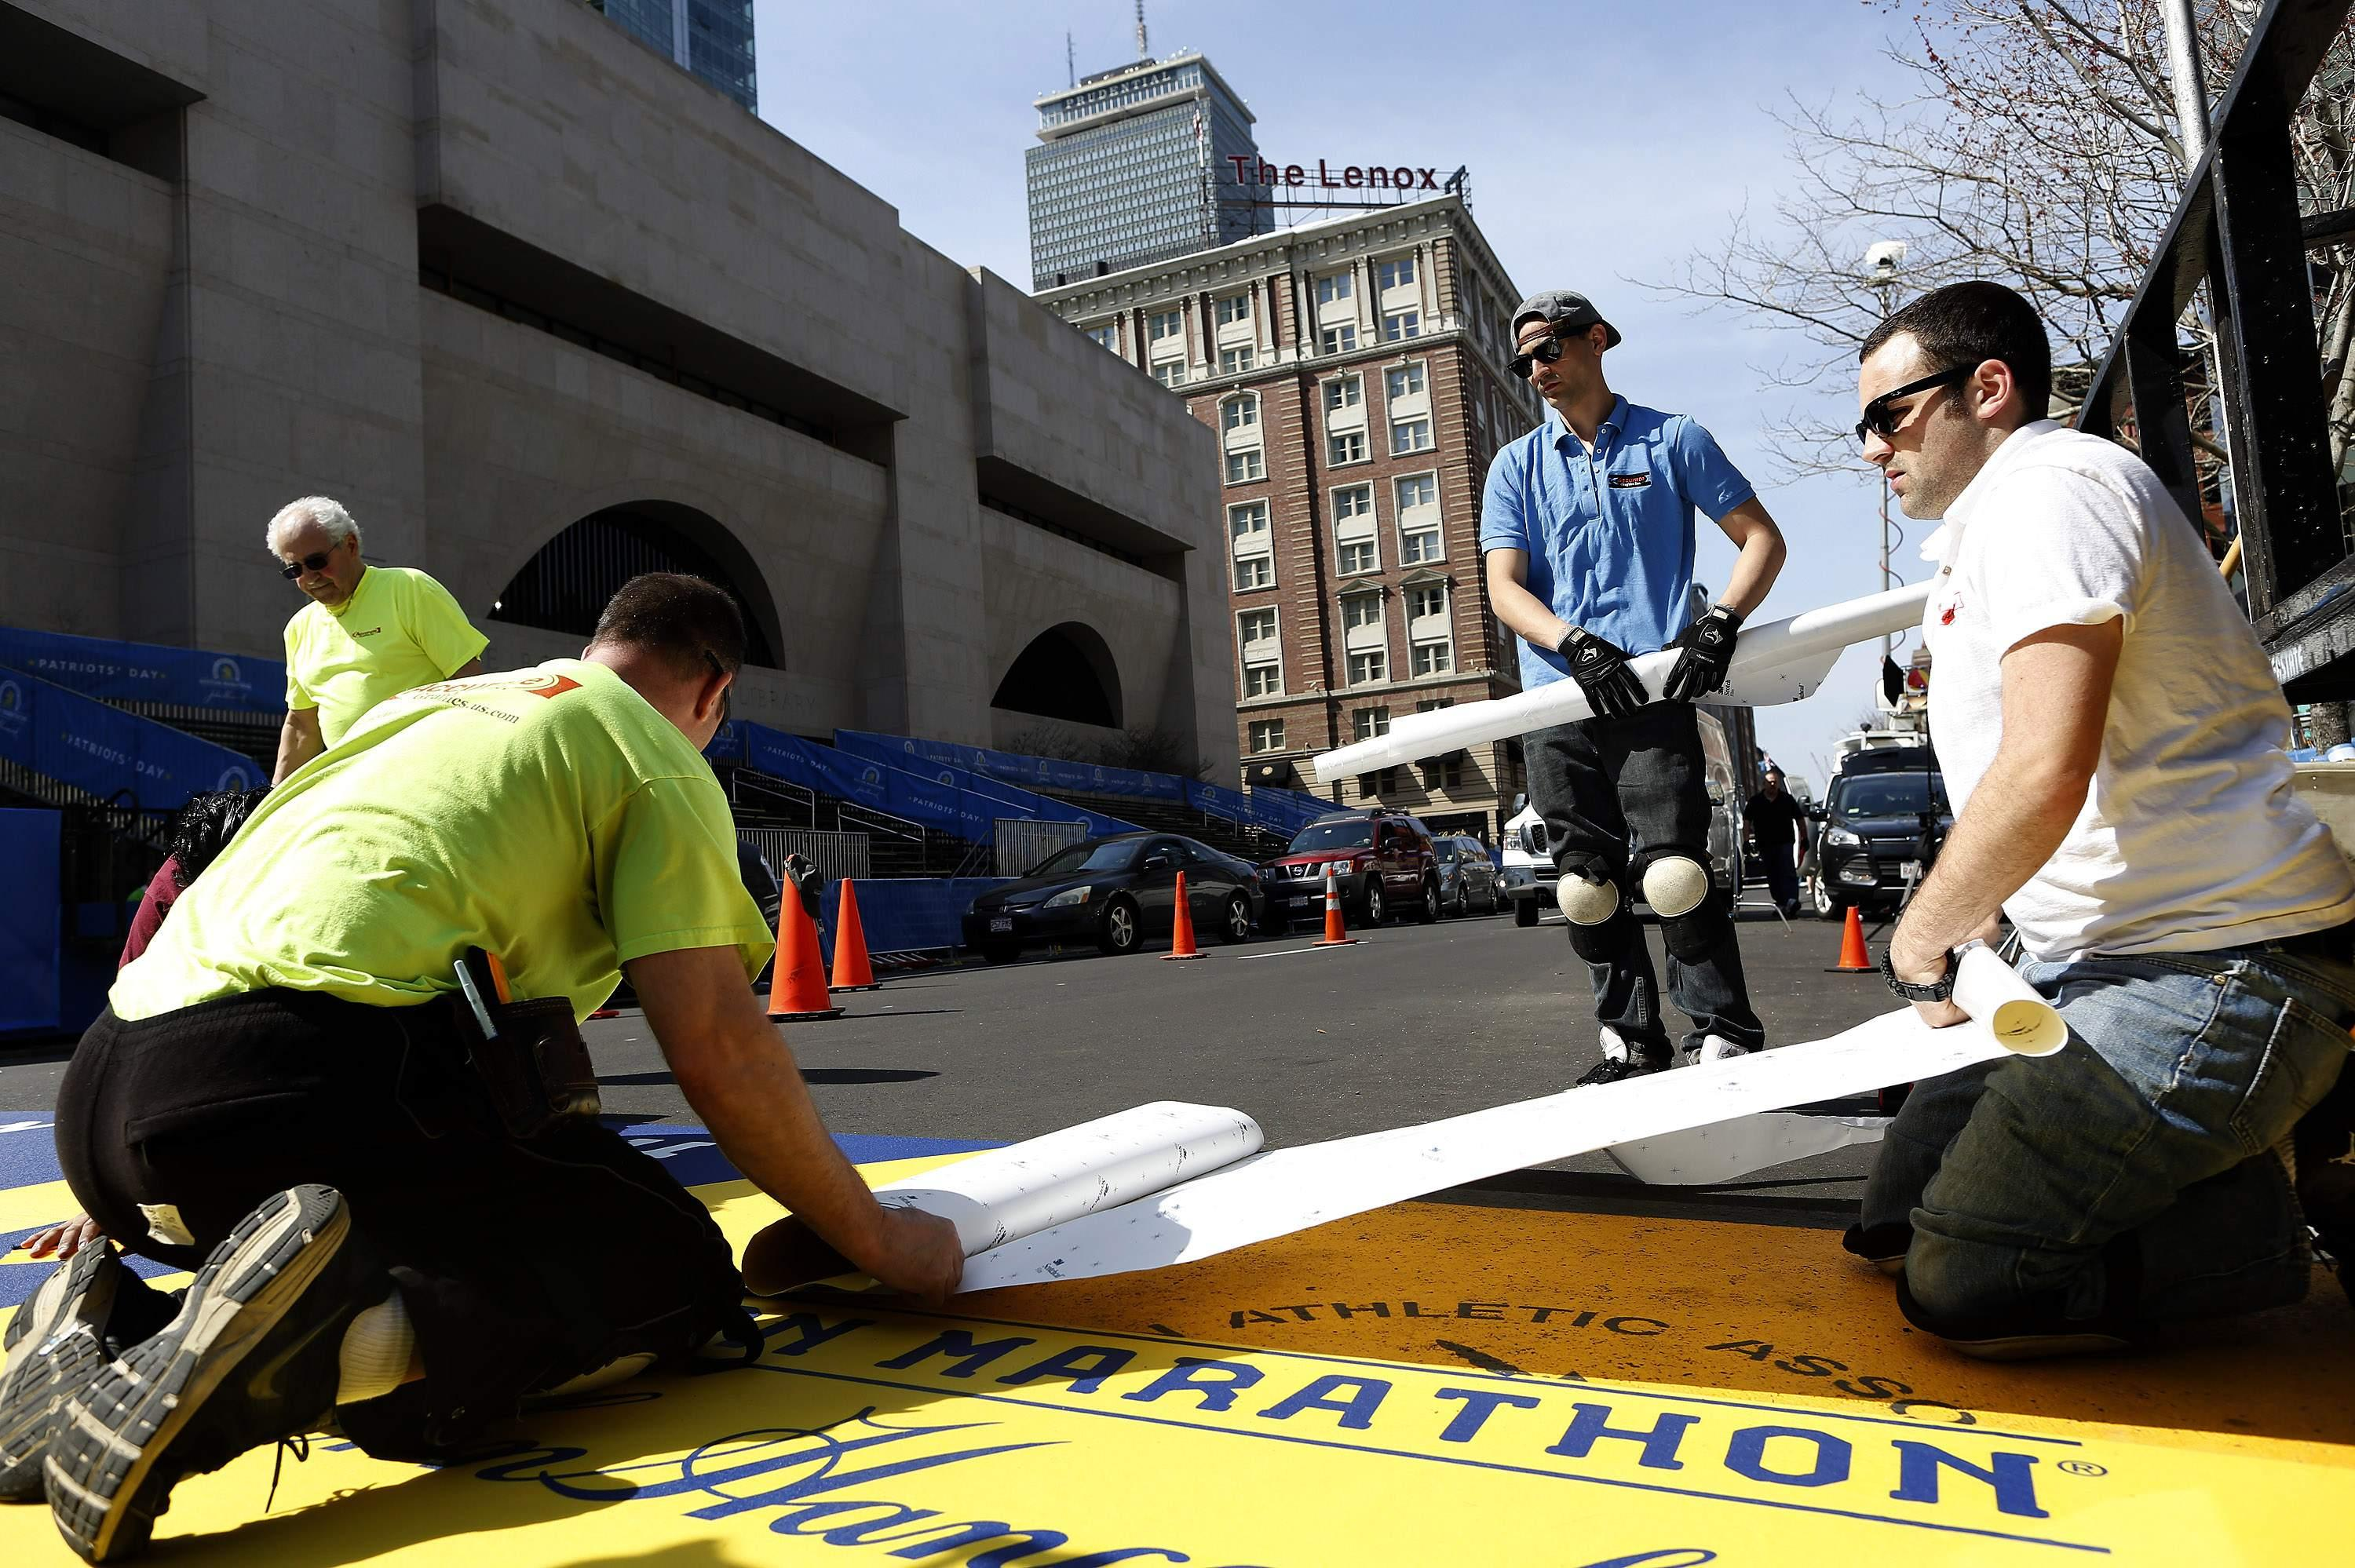 Boston Marathon Preparation - Finish Line